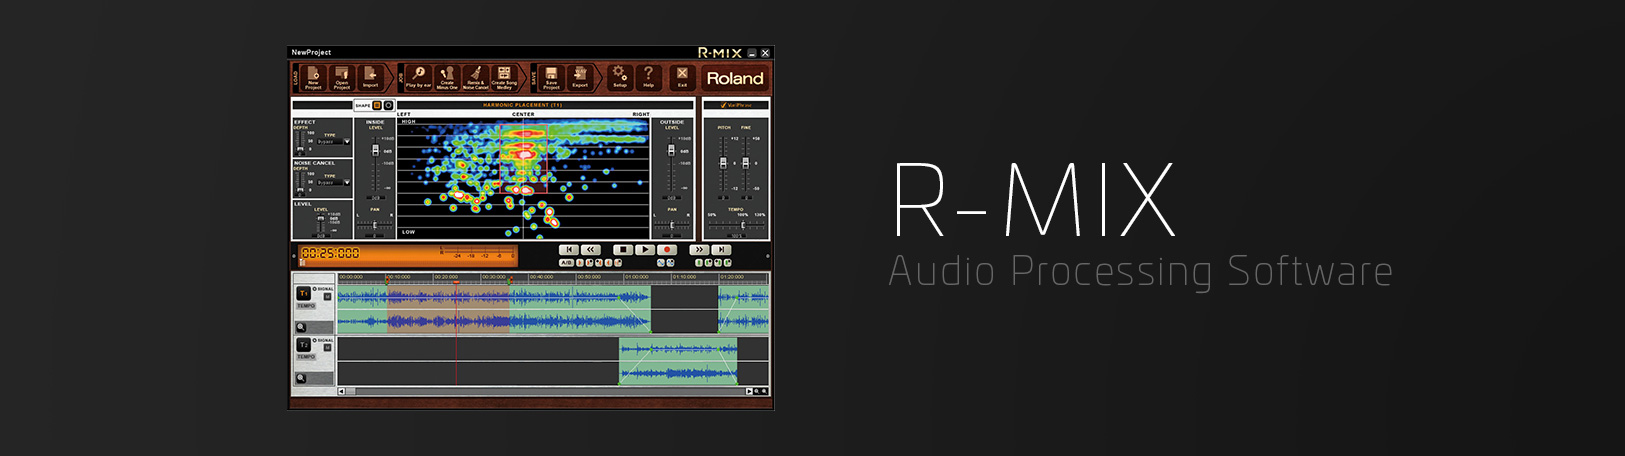 R-Mix: Audio Processing Software - Visual Audio Manipulation